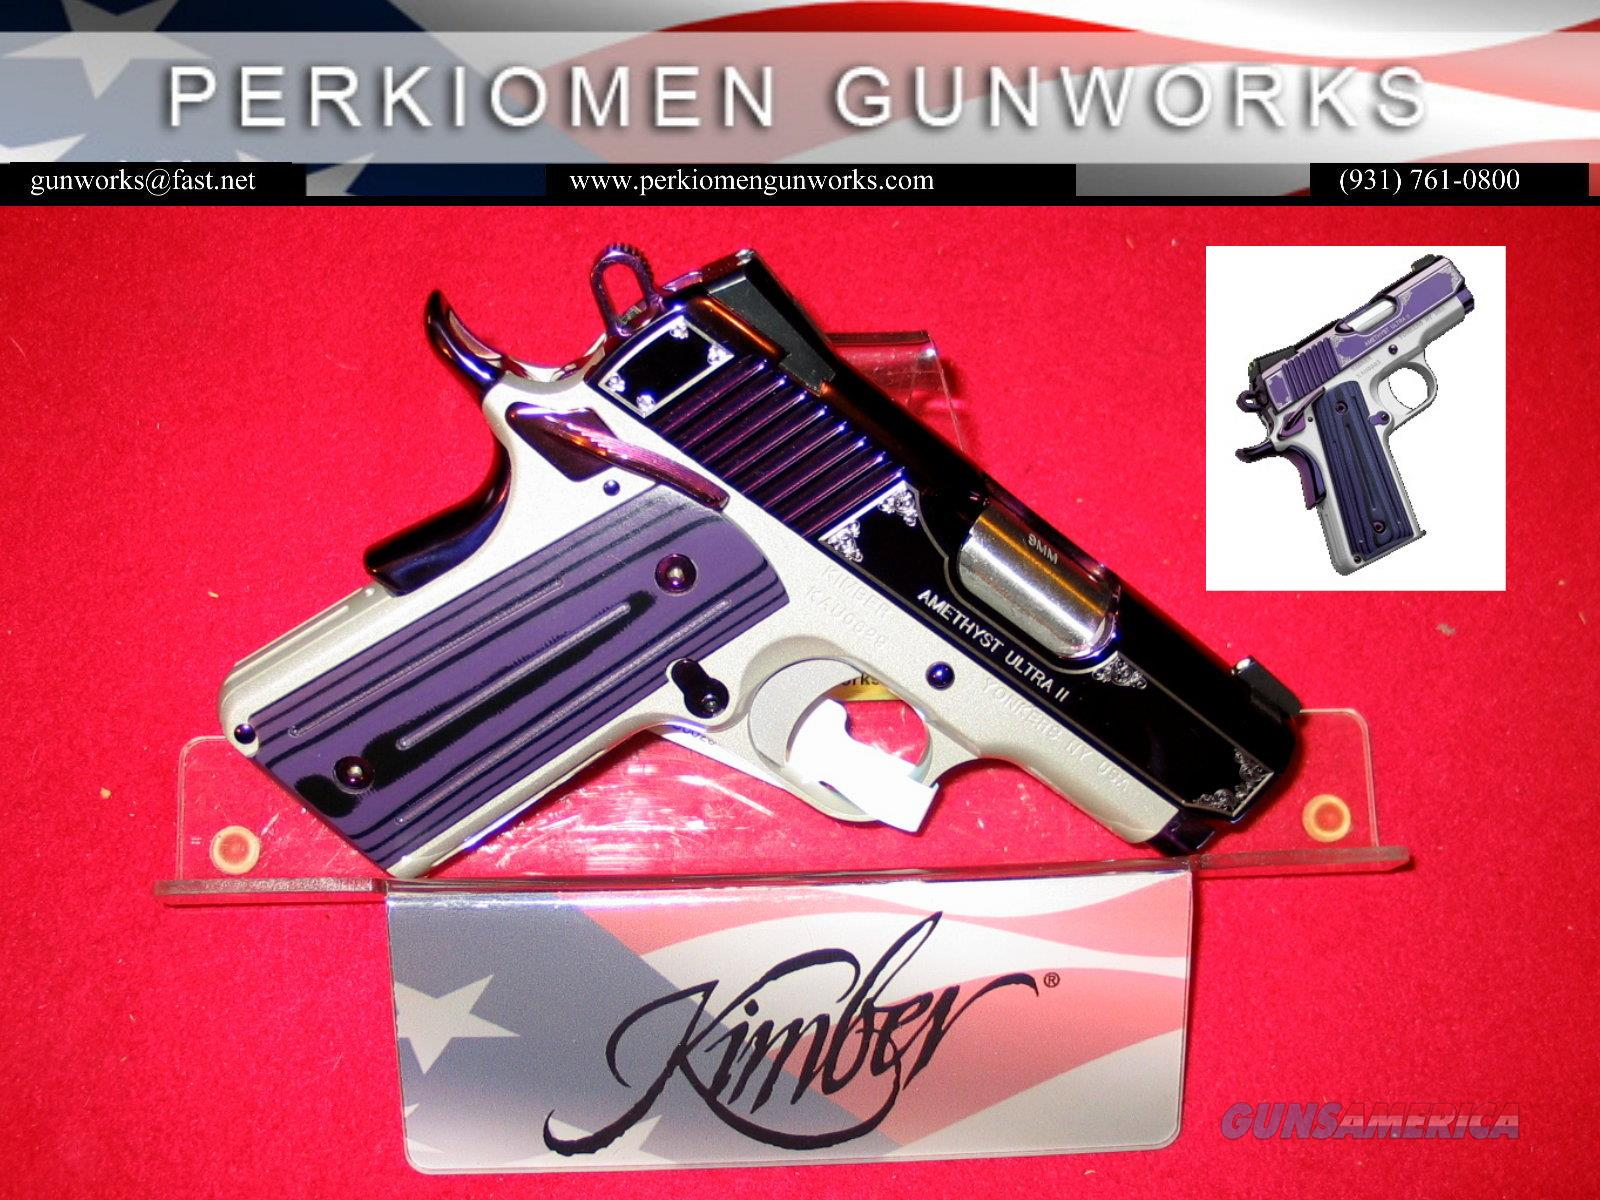 "Amethyst Ultra II, 9mm, 3"", Limited Edition, New in Box  Guns > Pistols > Kimber of America Pistols"